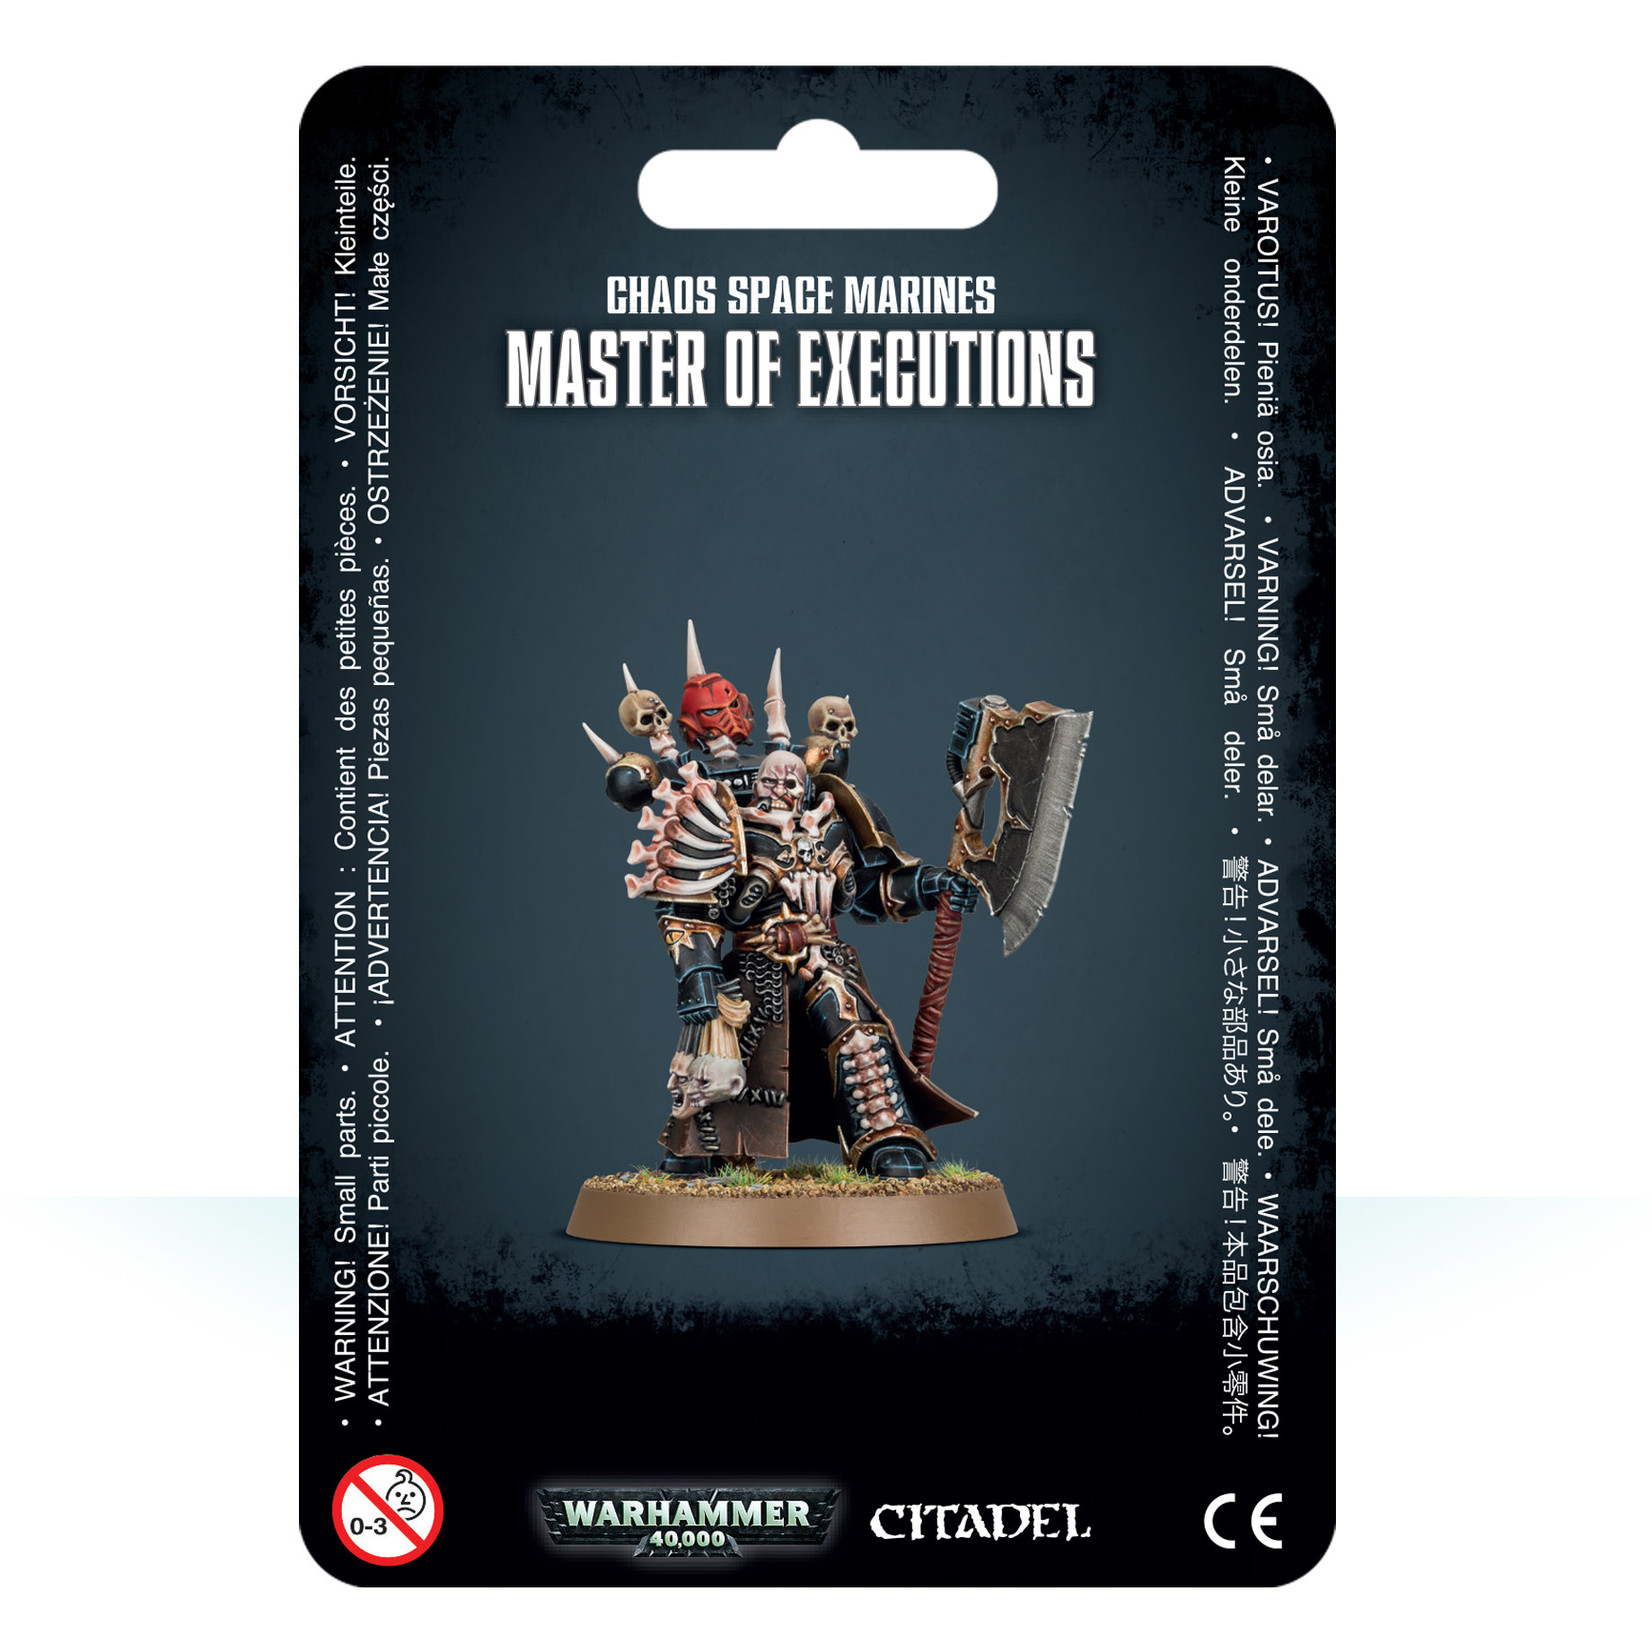 Games Workshop Master of Executions